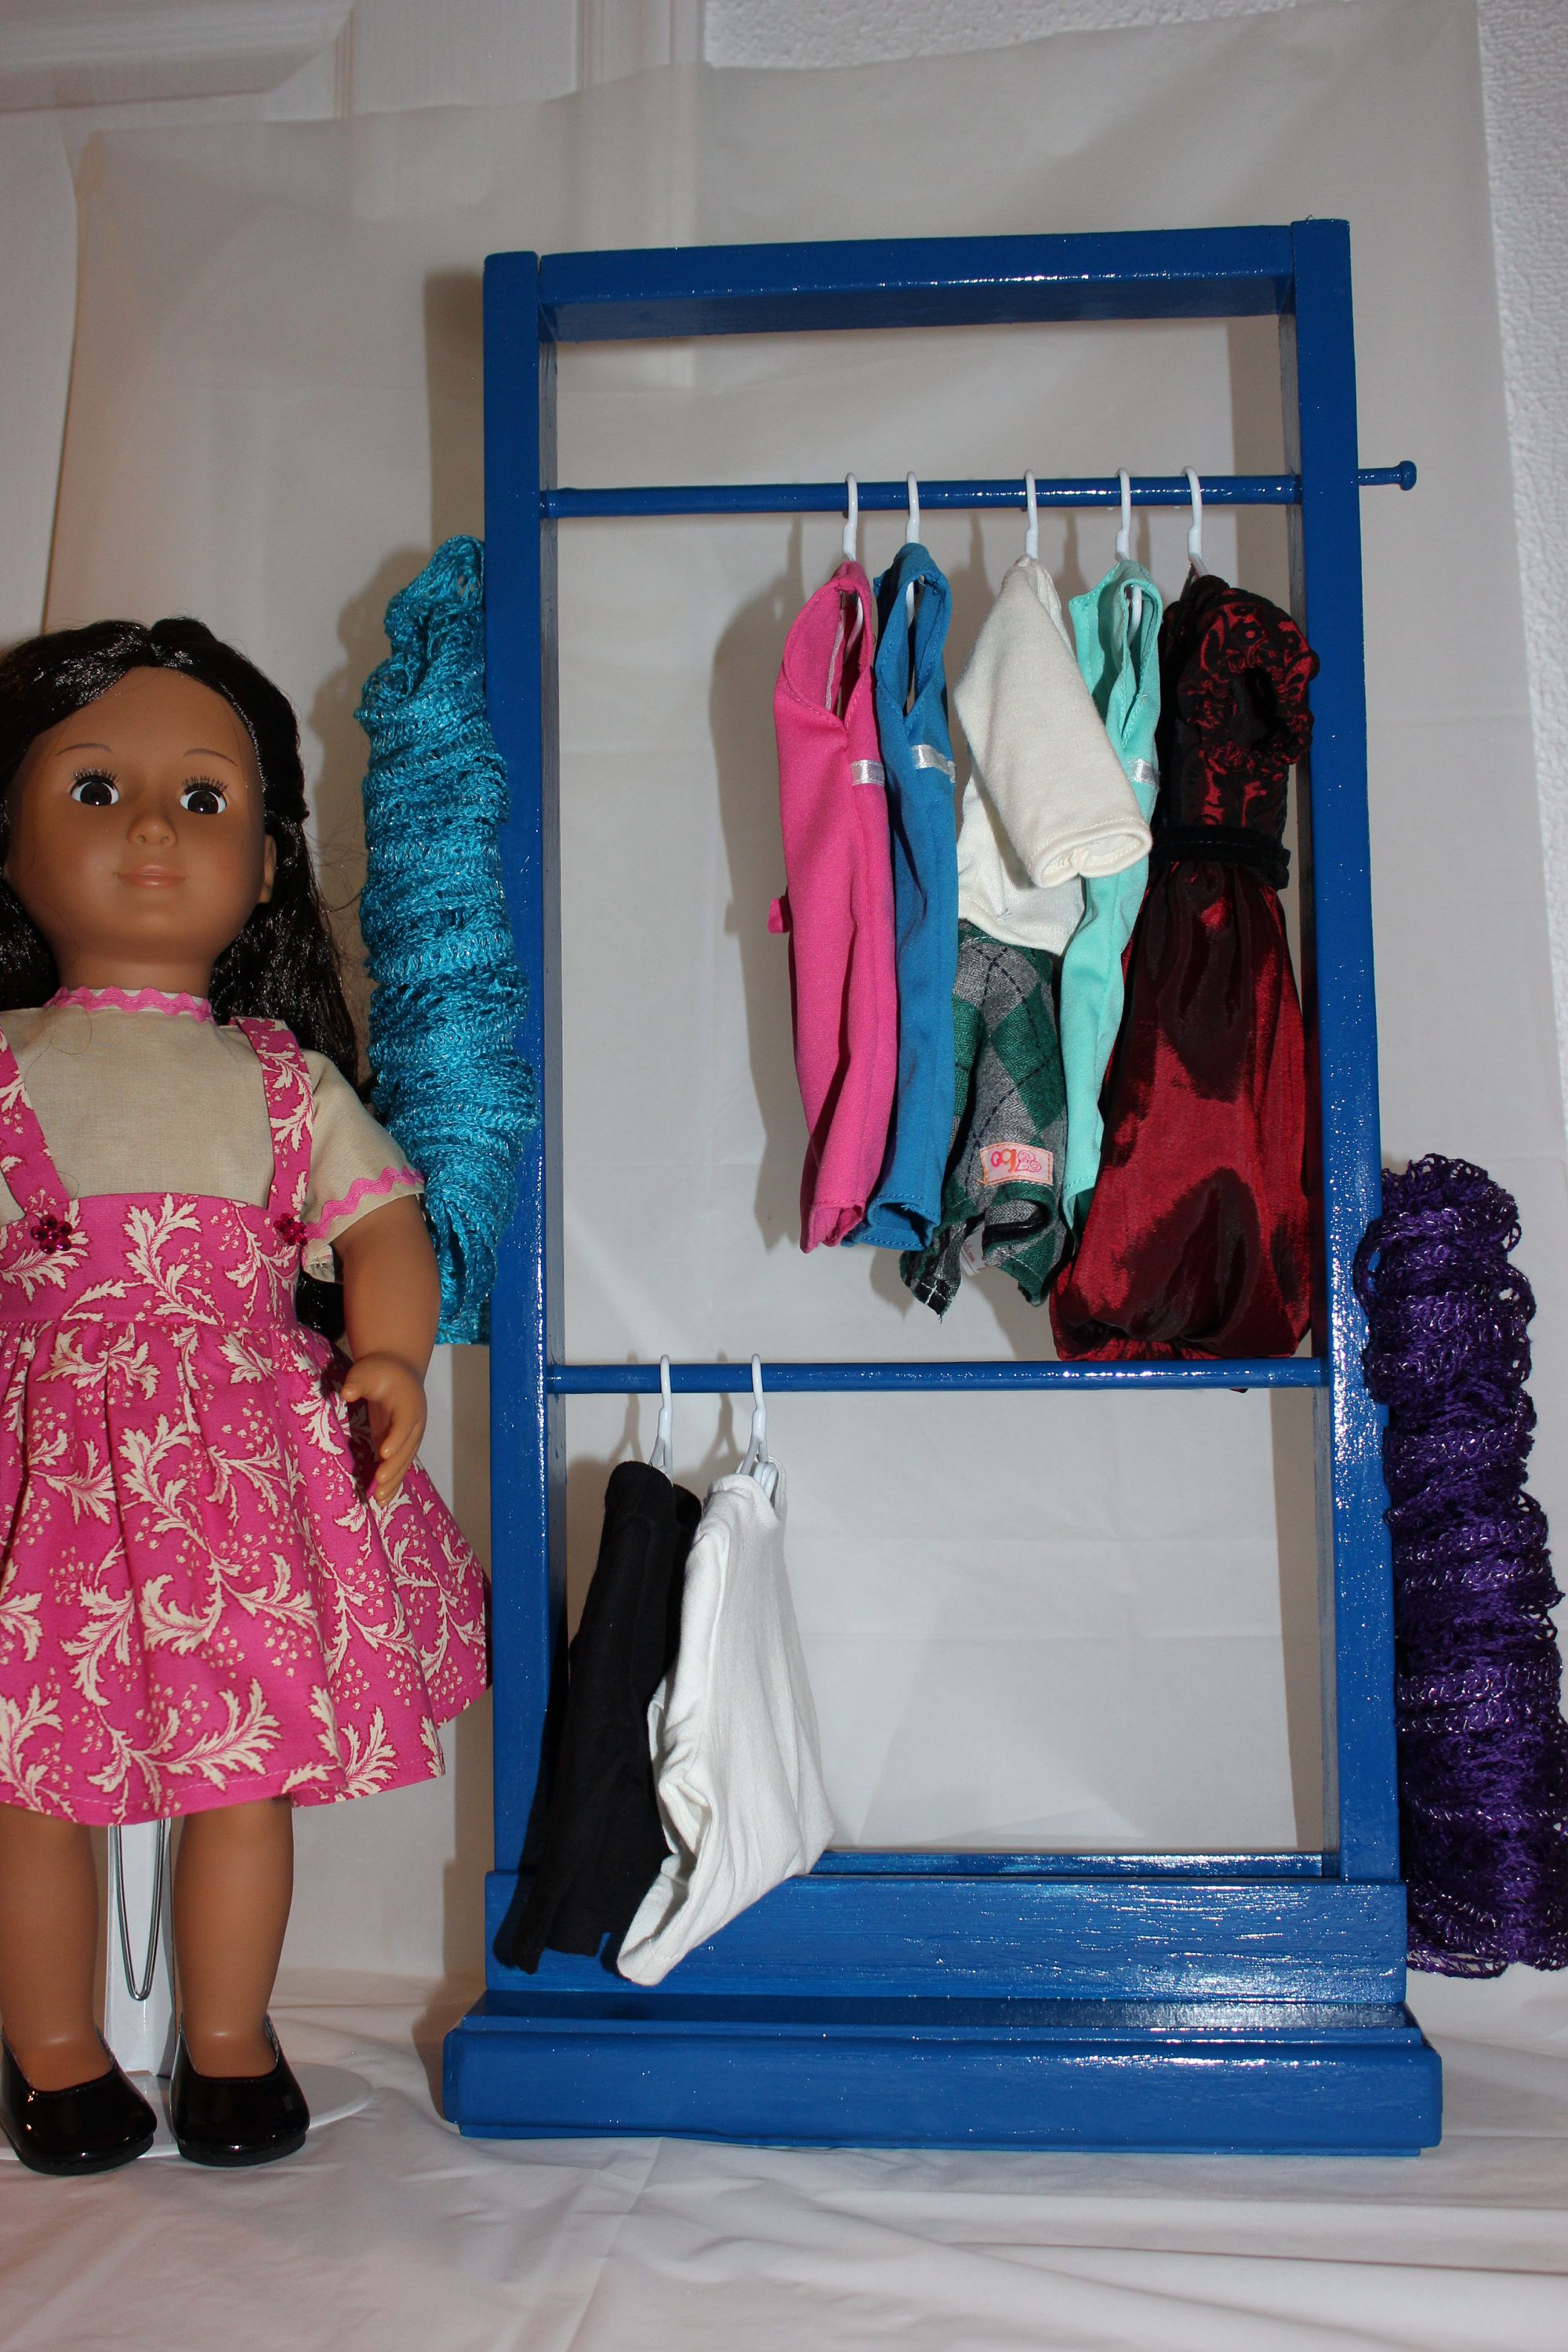 Doll Clothes Rack,Clothes Storage,Doll Furniture,18 Inch Doll Furniture, Clothes